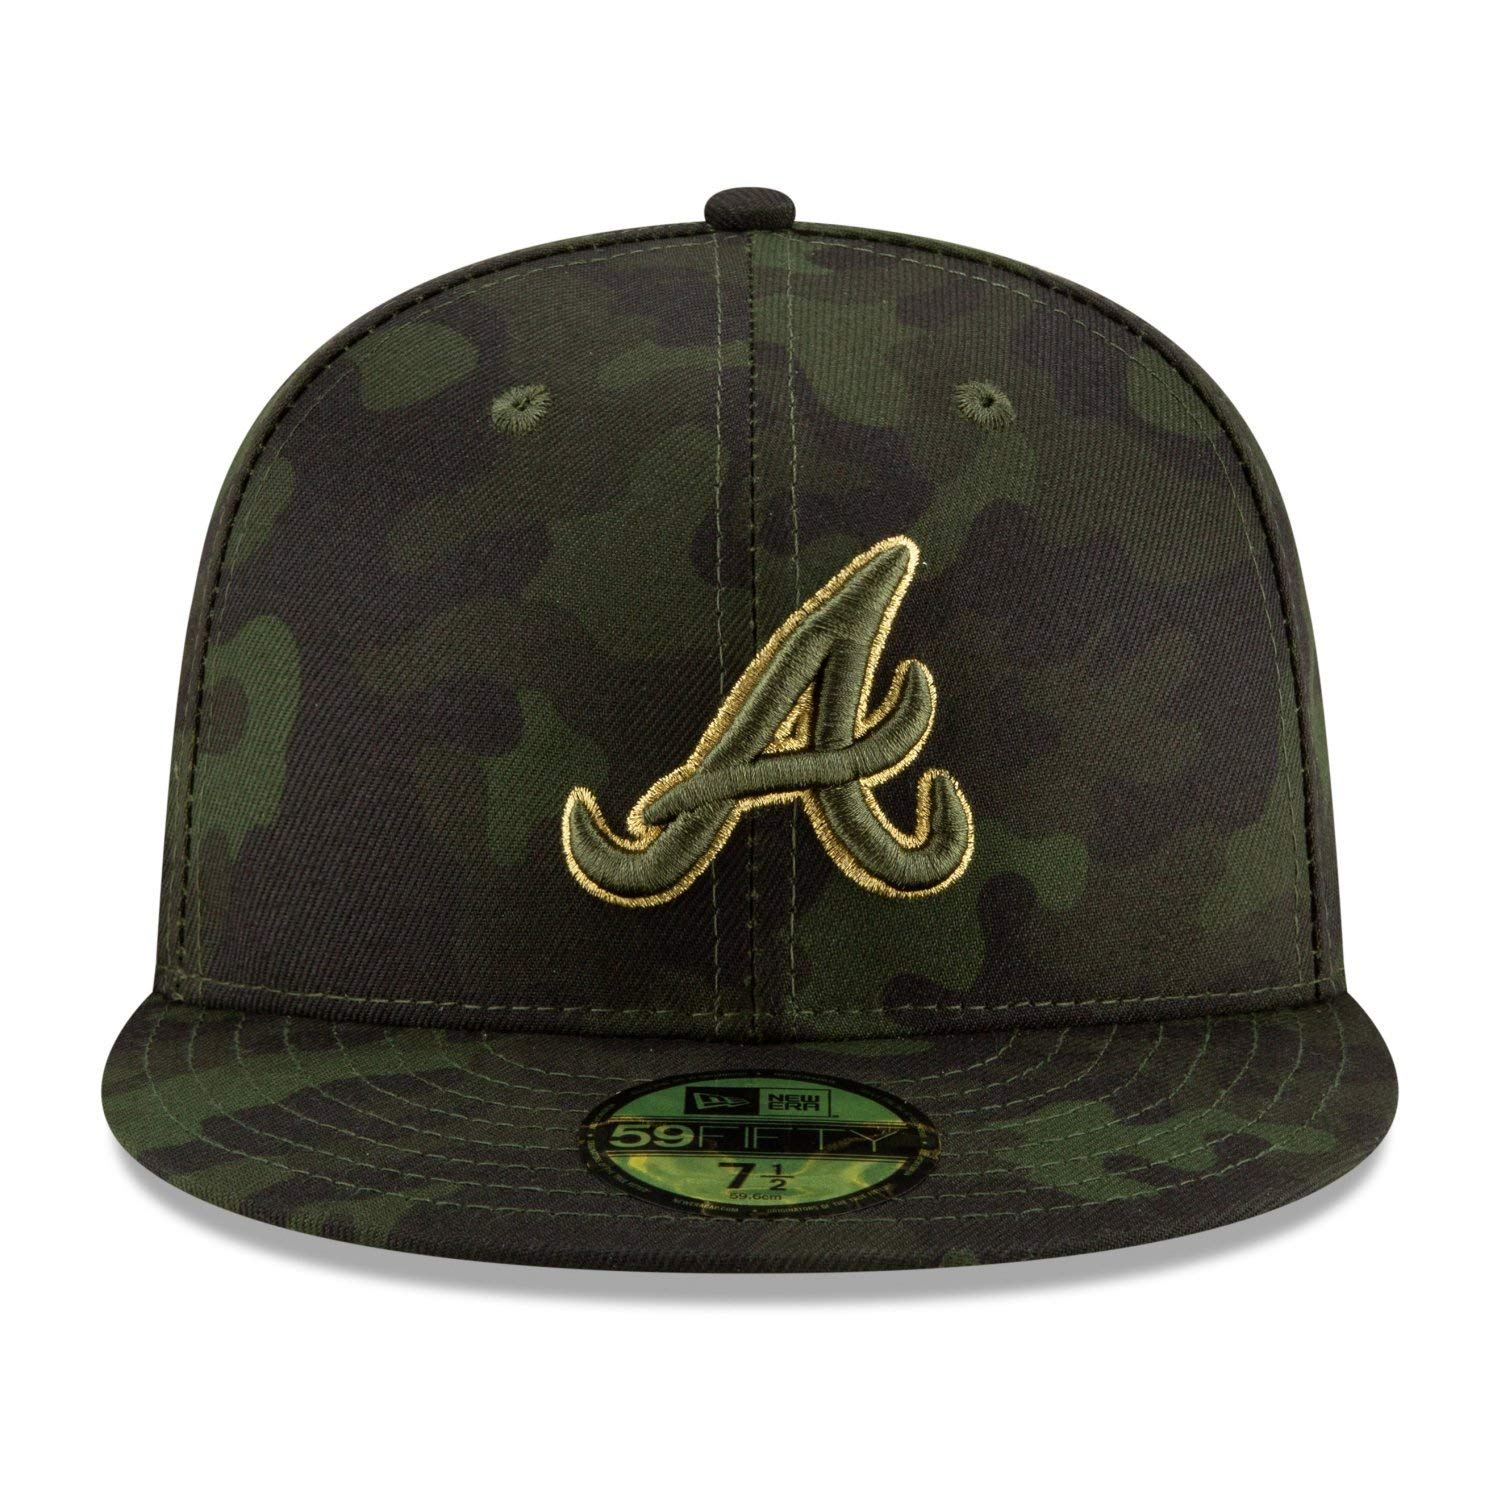 newest 9d359 0d7a7 Amazon.com   New Era Atlanta Braves 2019 MLB Armed Forces Day On-Field  59FIFTY Fitted Hat - Camo   Sports   Outdoors